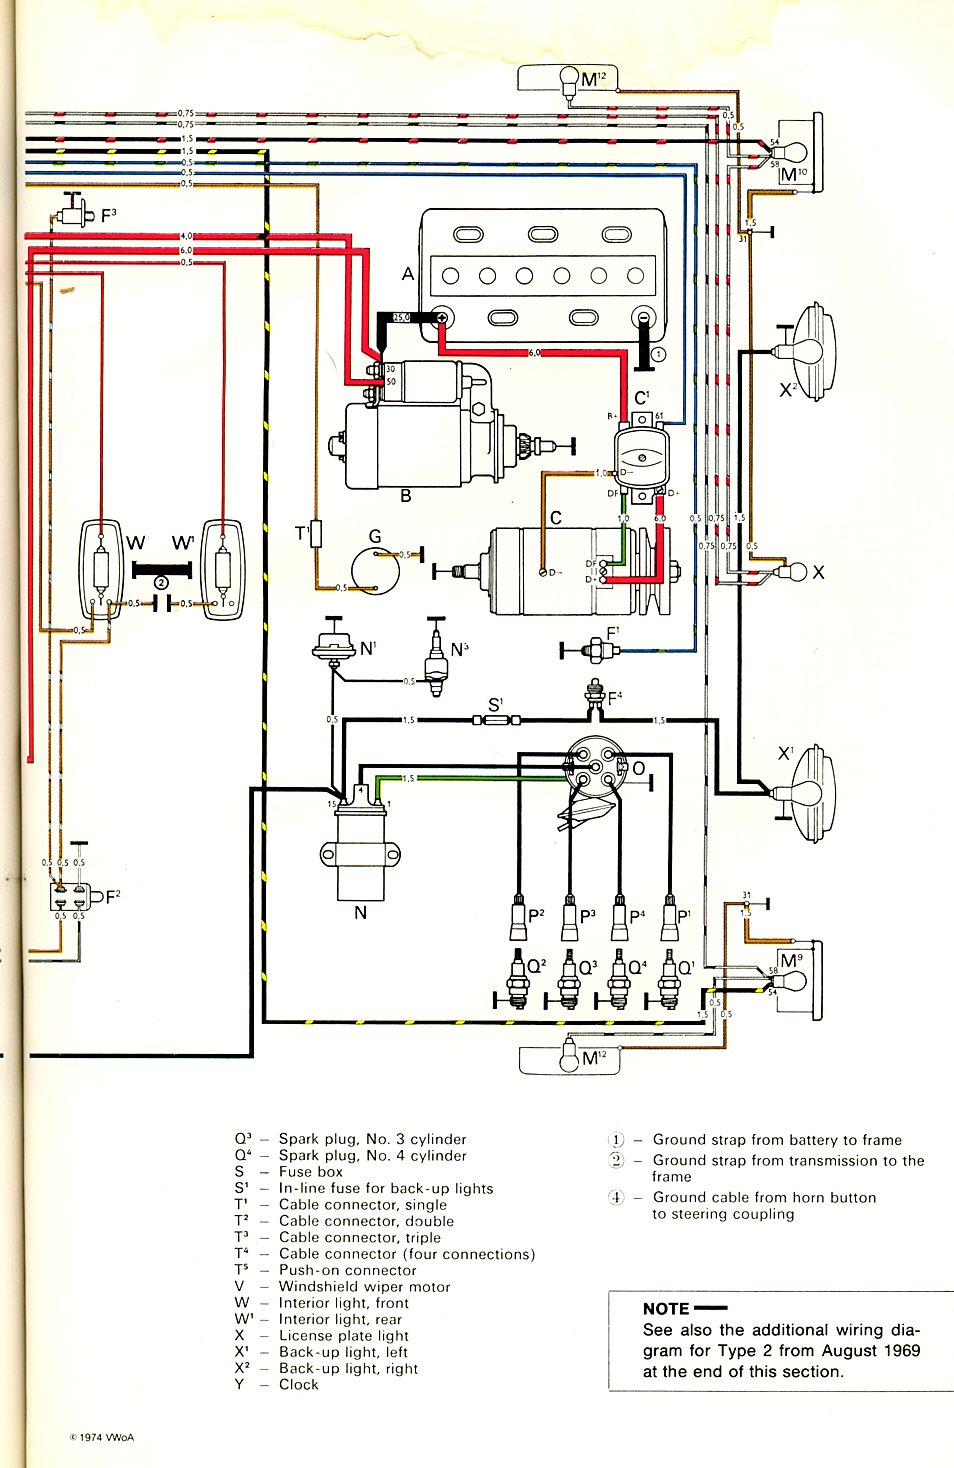 baybus_70b thesamba com type 2 wiring diagrams ford transit interior lights wiring diagram at gsmx.co